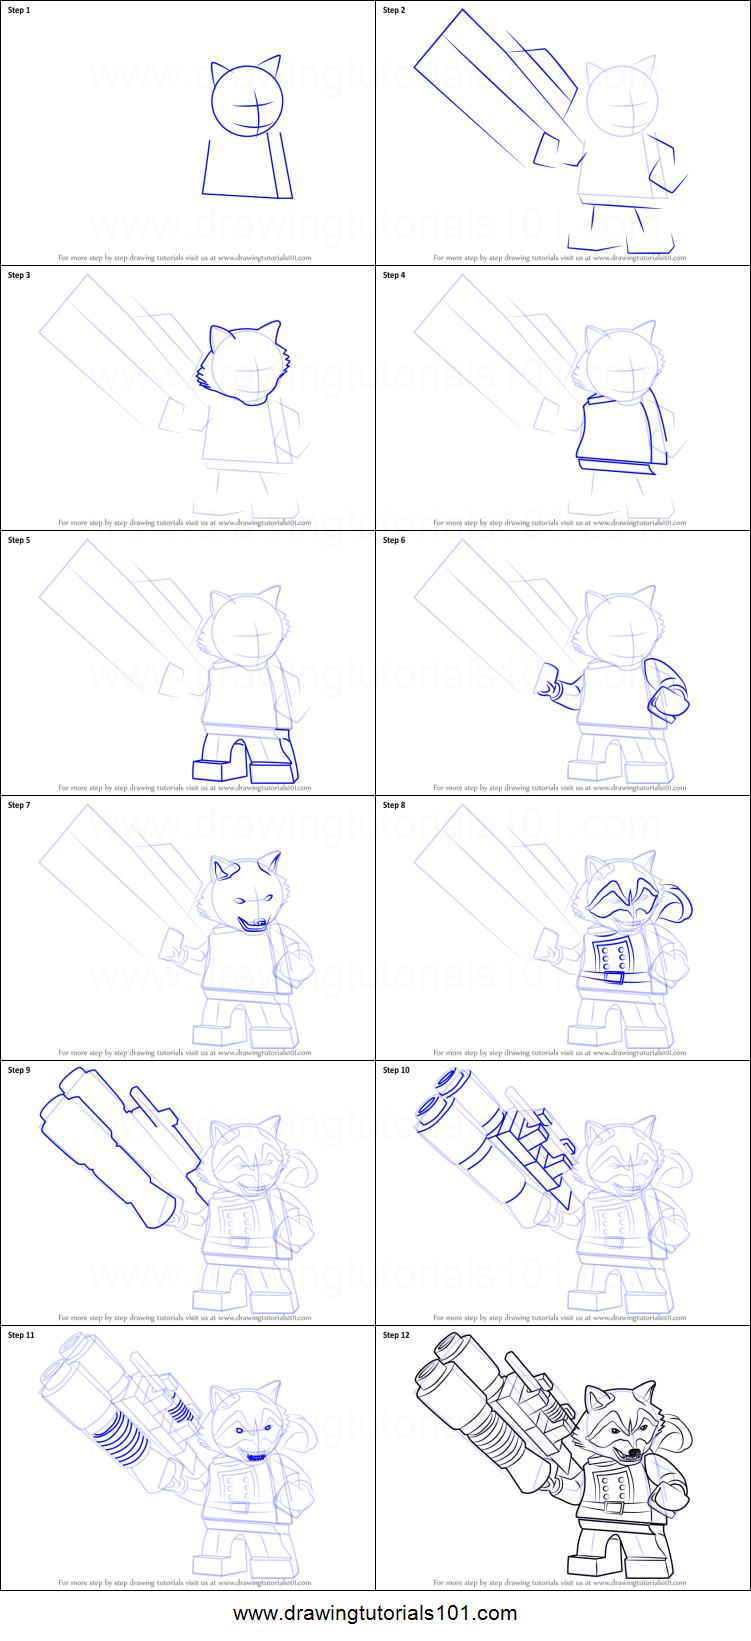 How To Draw Lego Rocket Raccoon Printable Step By Step Drawing Sheet